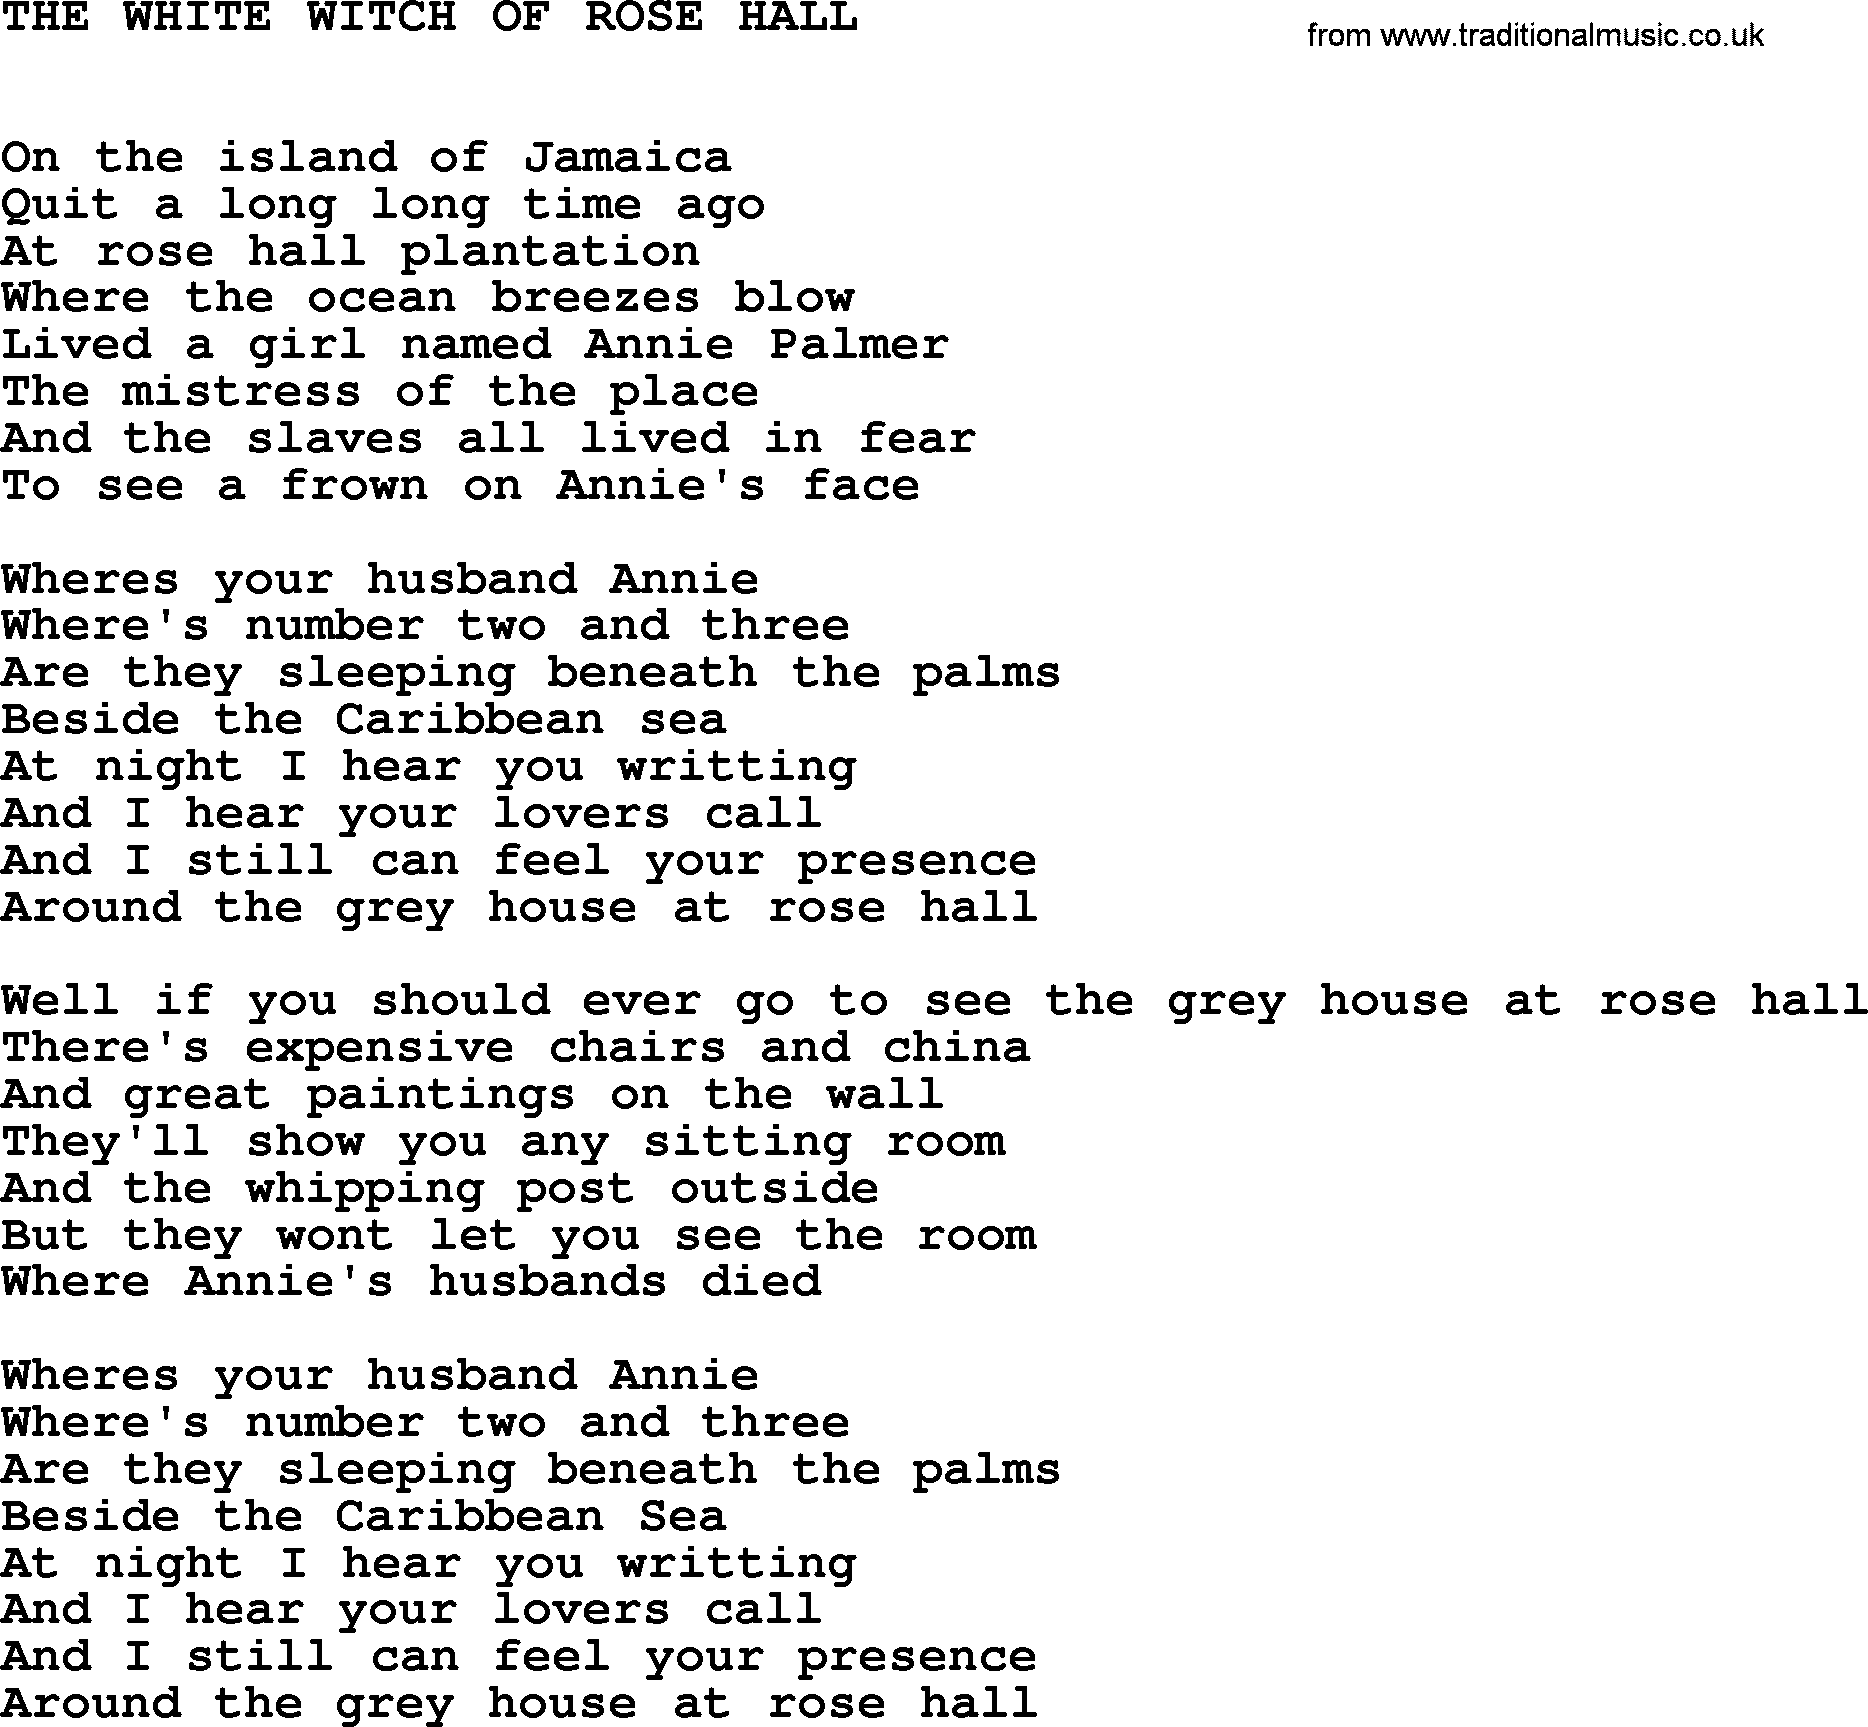 Johnny Cash song The White Witch Of Rose Hall, lyrics